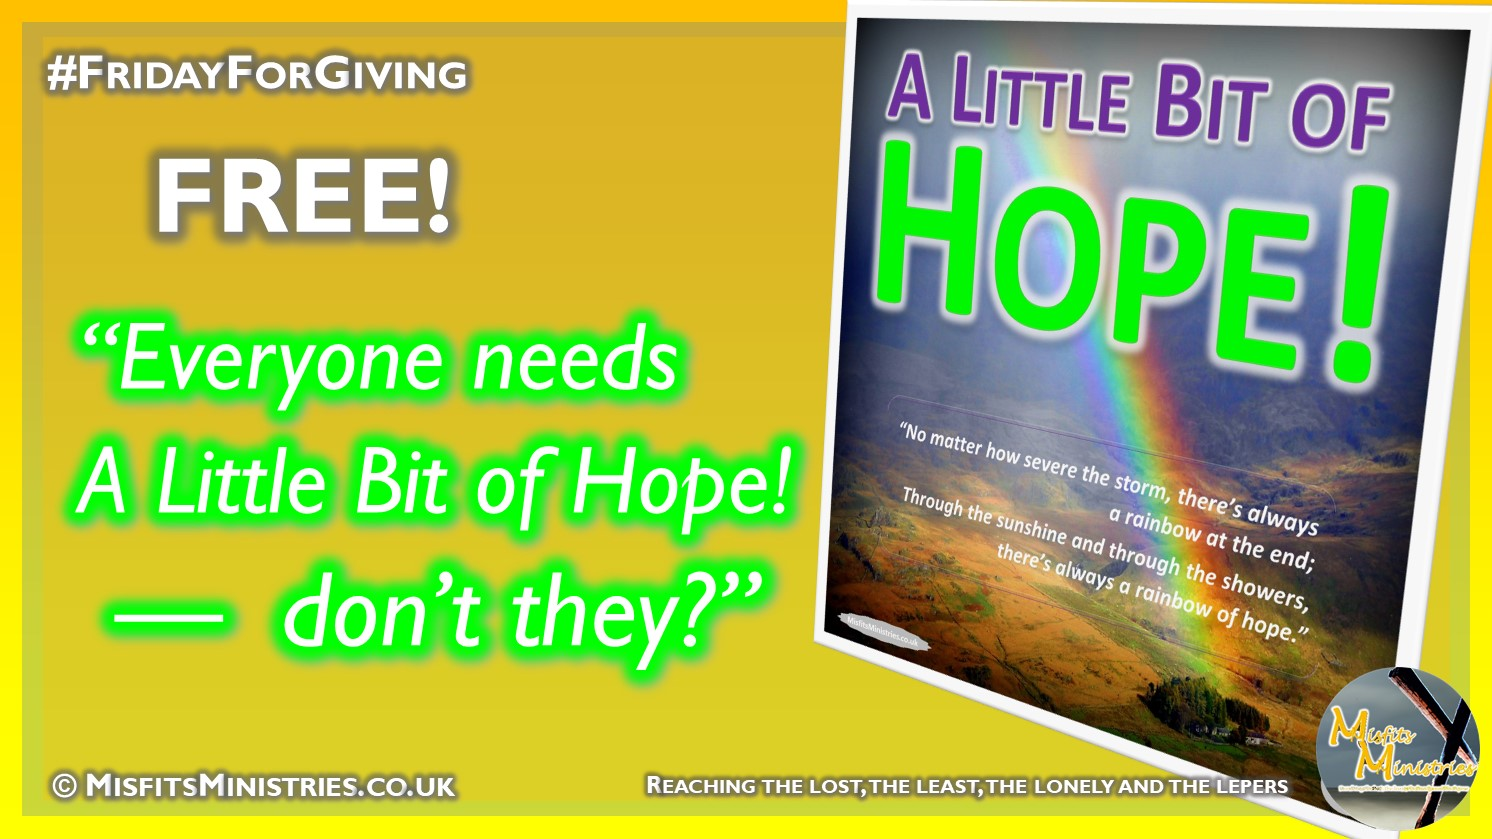 FridayForGiving - A Little Bit of Hope